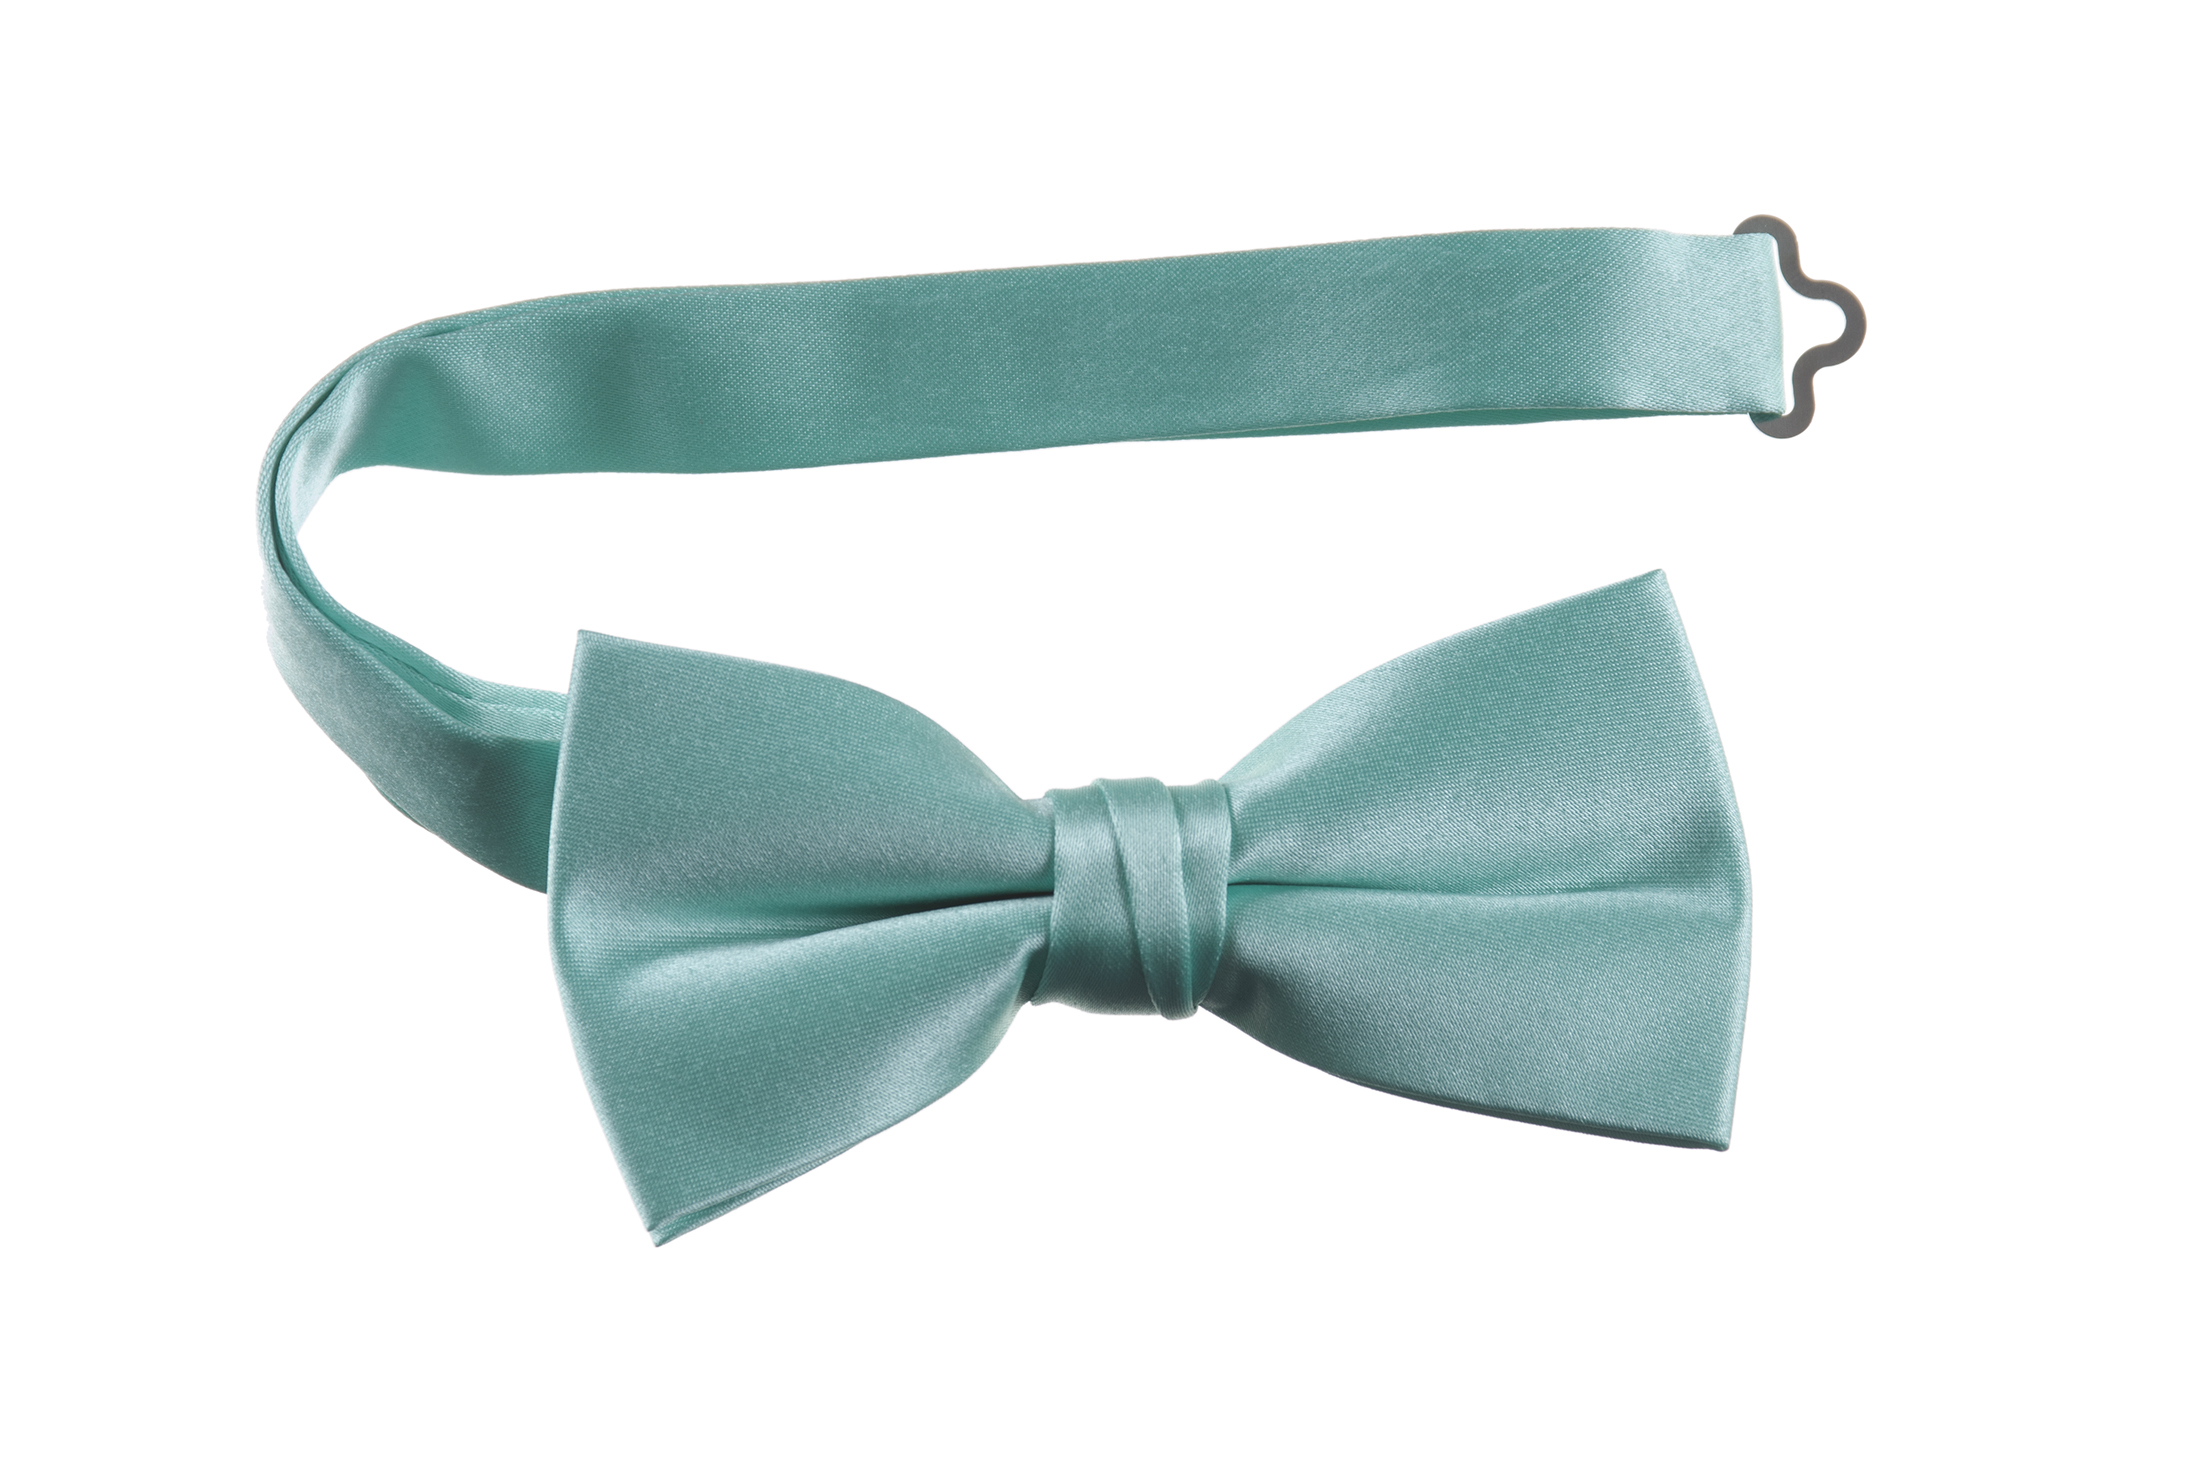 Adjustable Bow Tie /& Suspenders Details about  /New Teal Mint Green Bow Tie /& Suspender Set